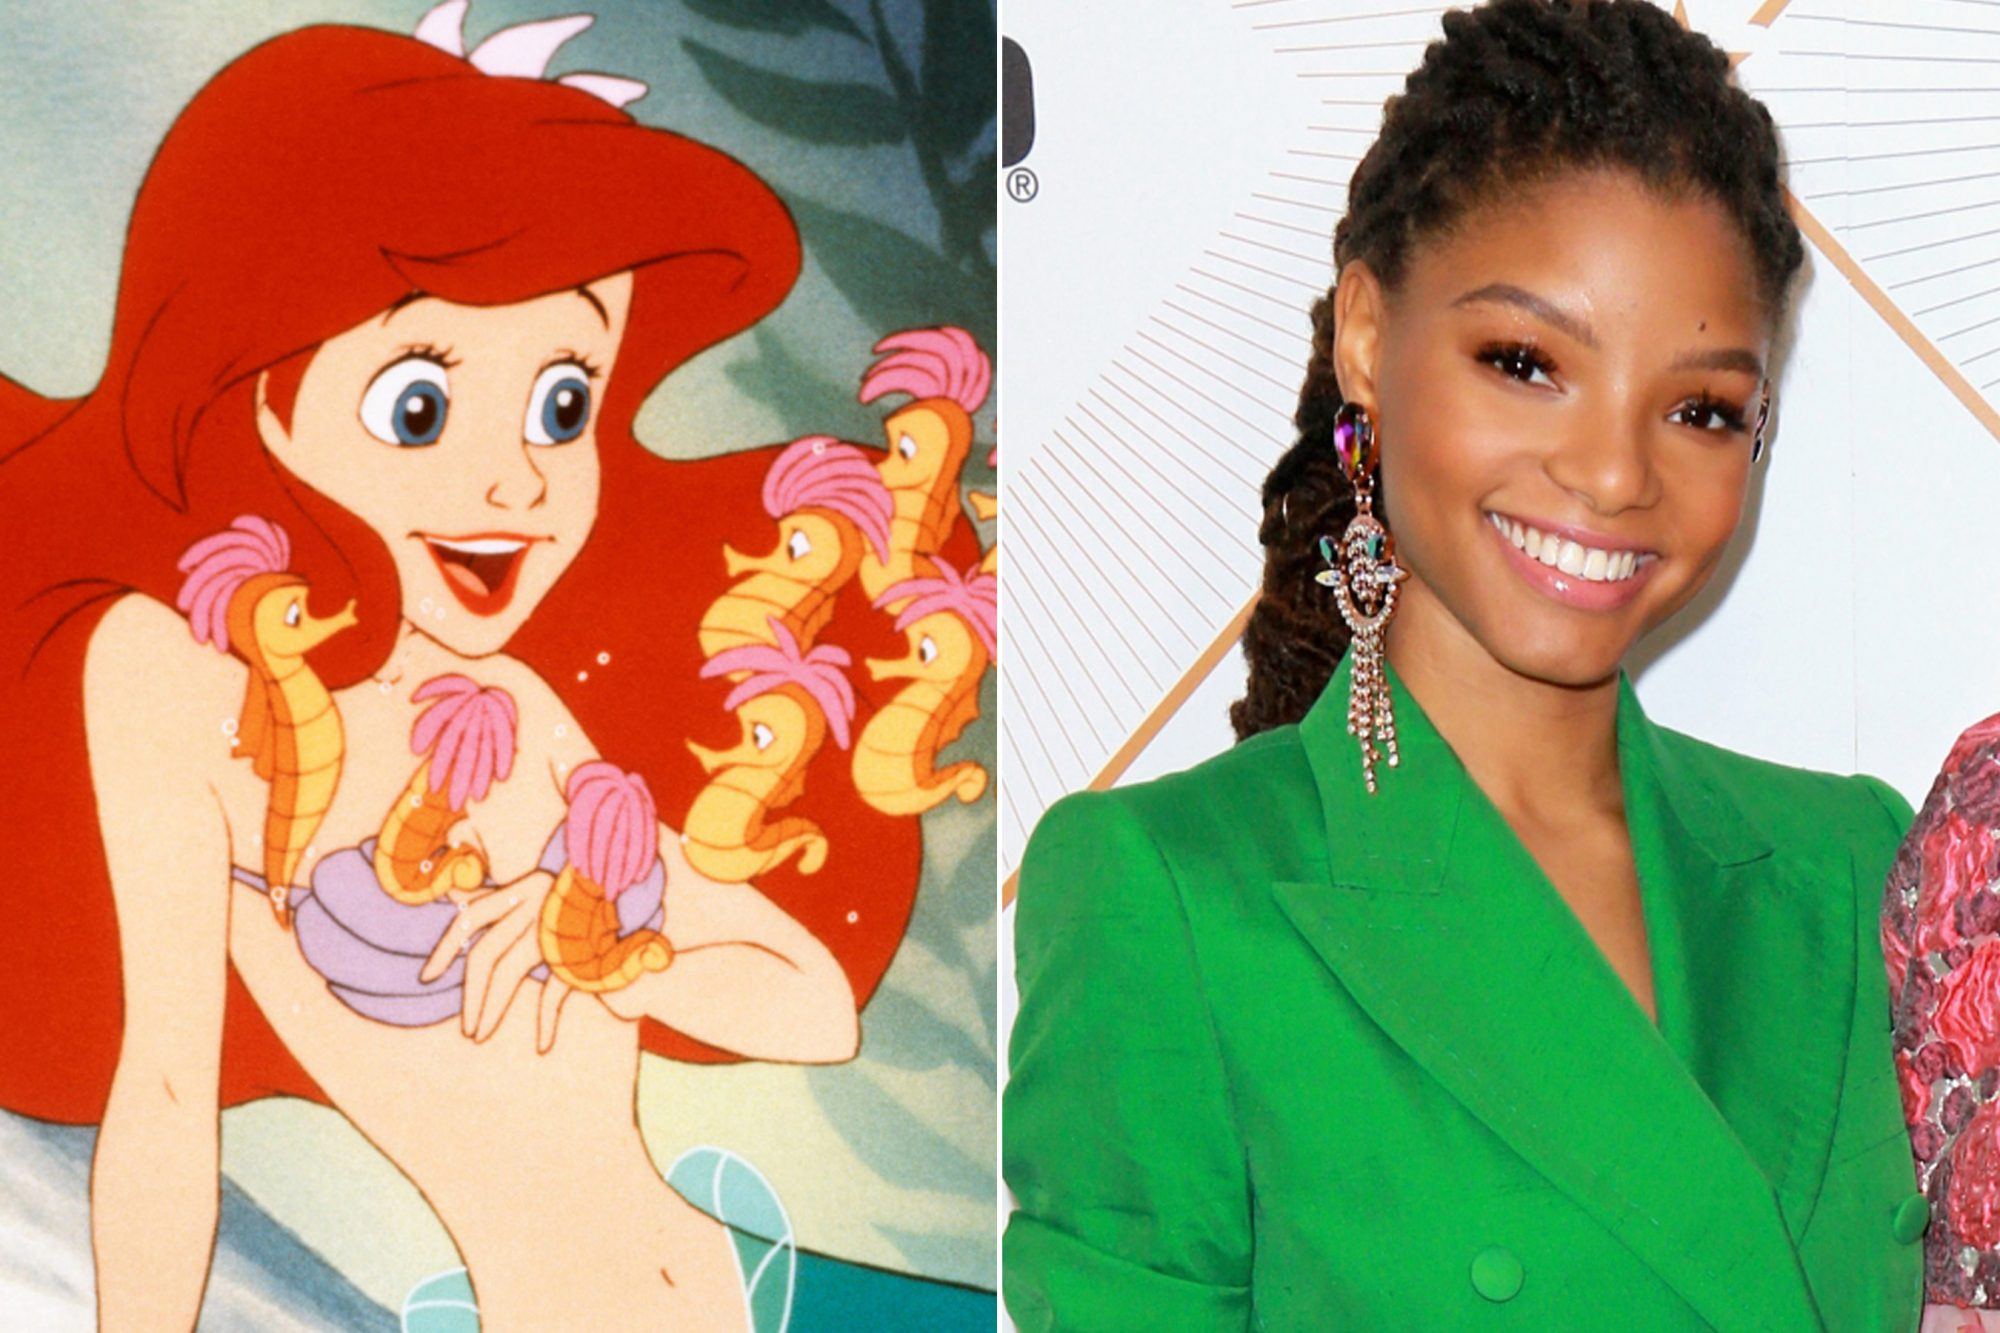 THE LITTLE MERMAID, Halle Bailey